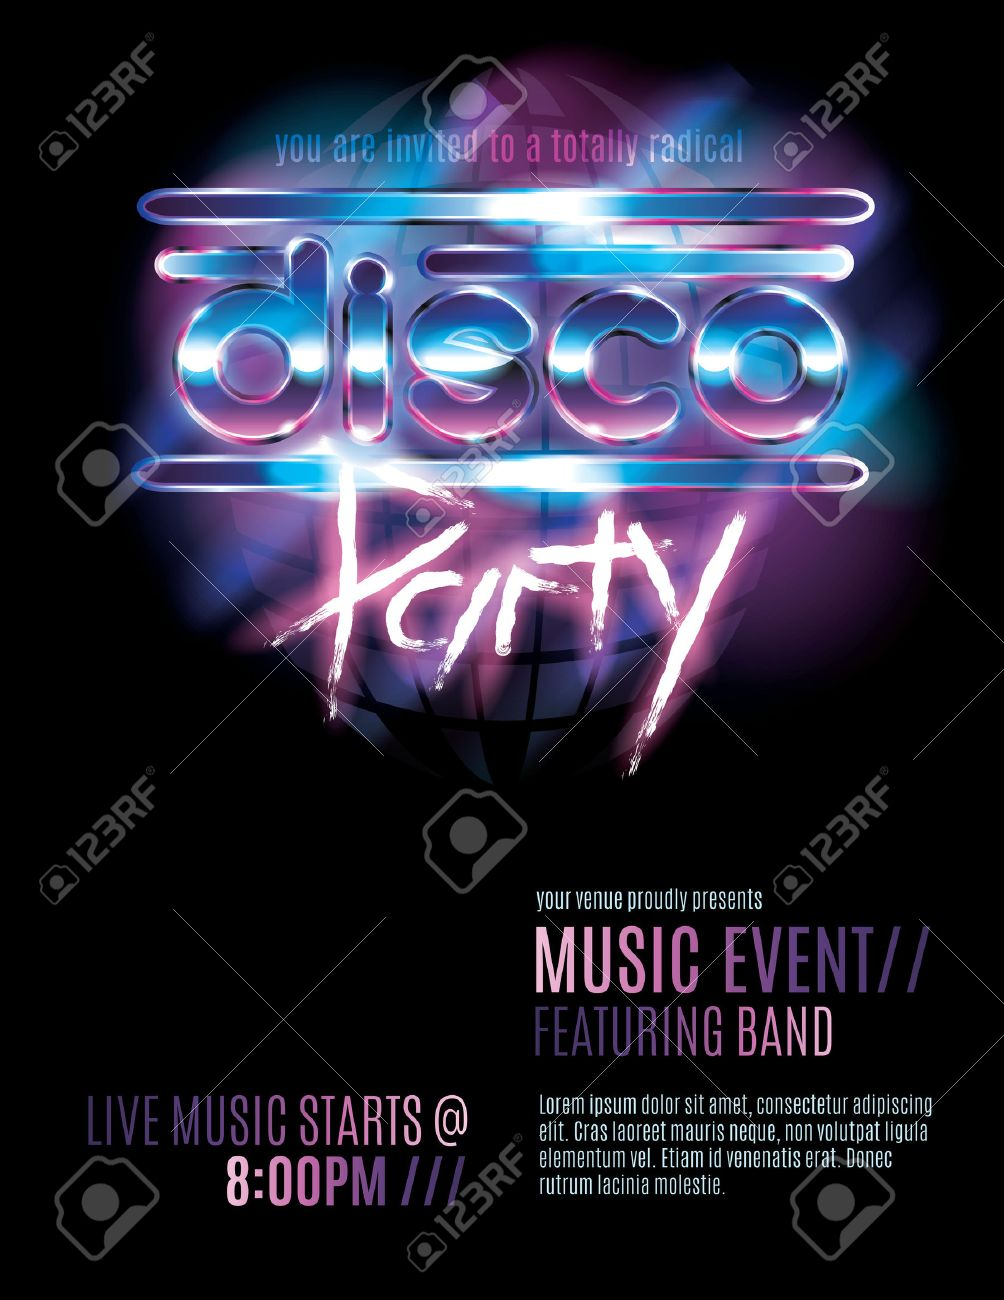 Shiny Retro S Party Or Disco Party Invitation Template Royalty - Disco party invites templates free